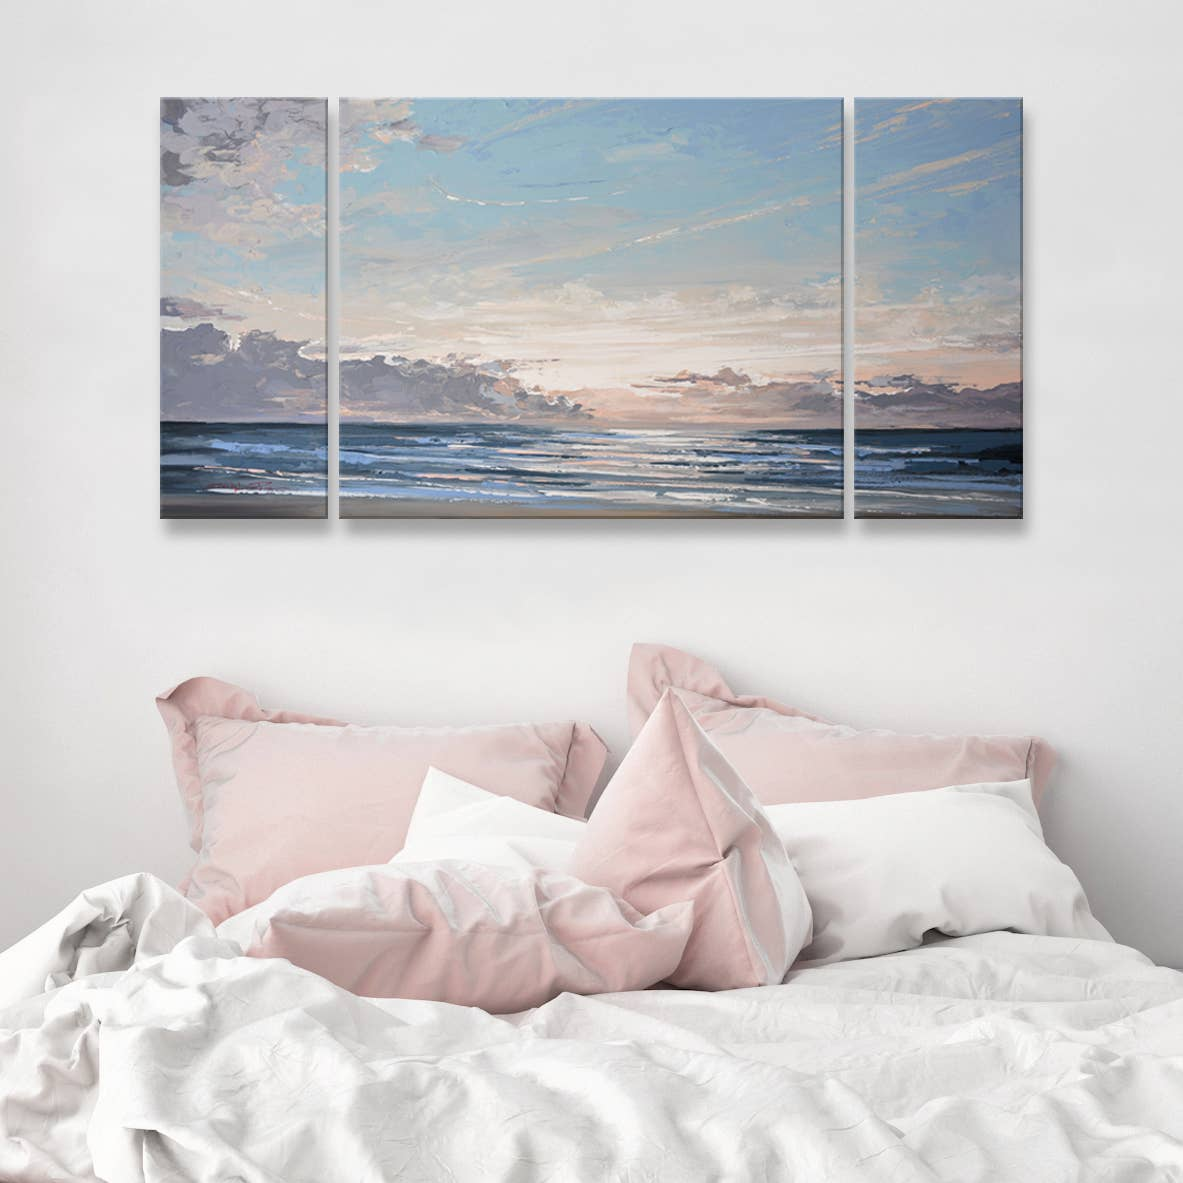 'Into the Mystic' 3-Pc Wrapped Canvas Co